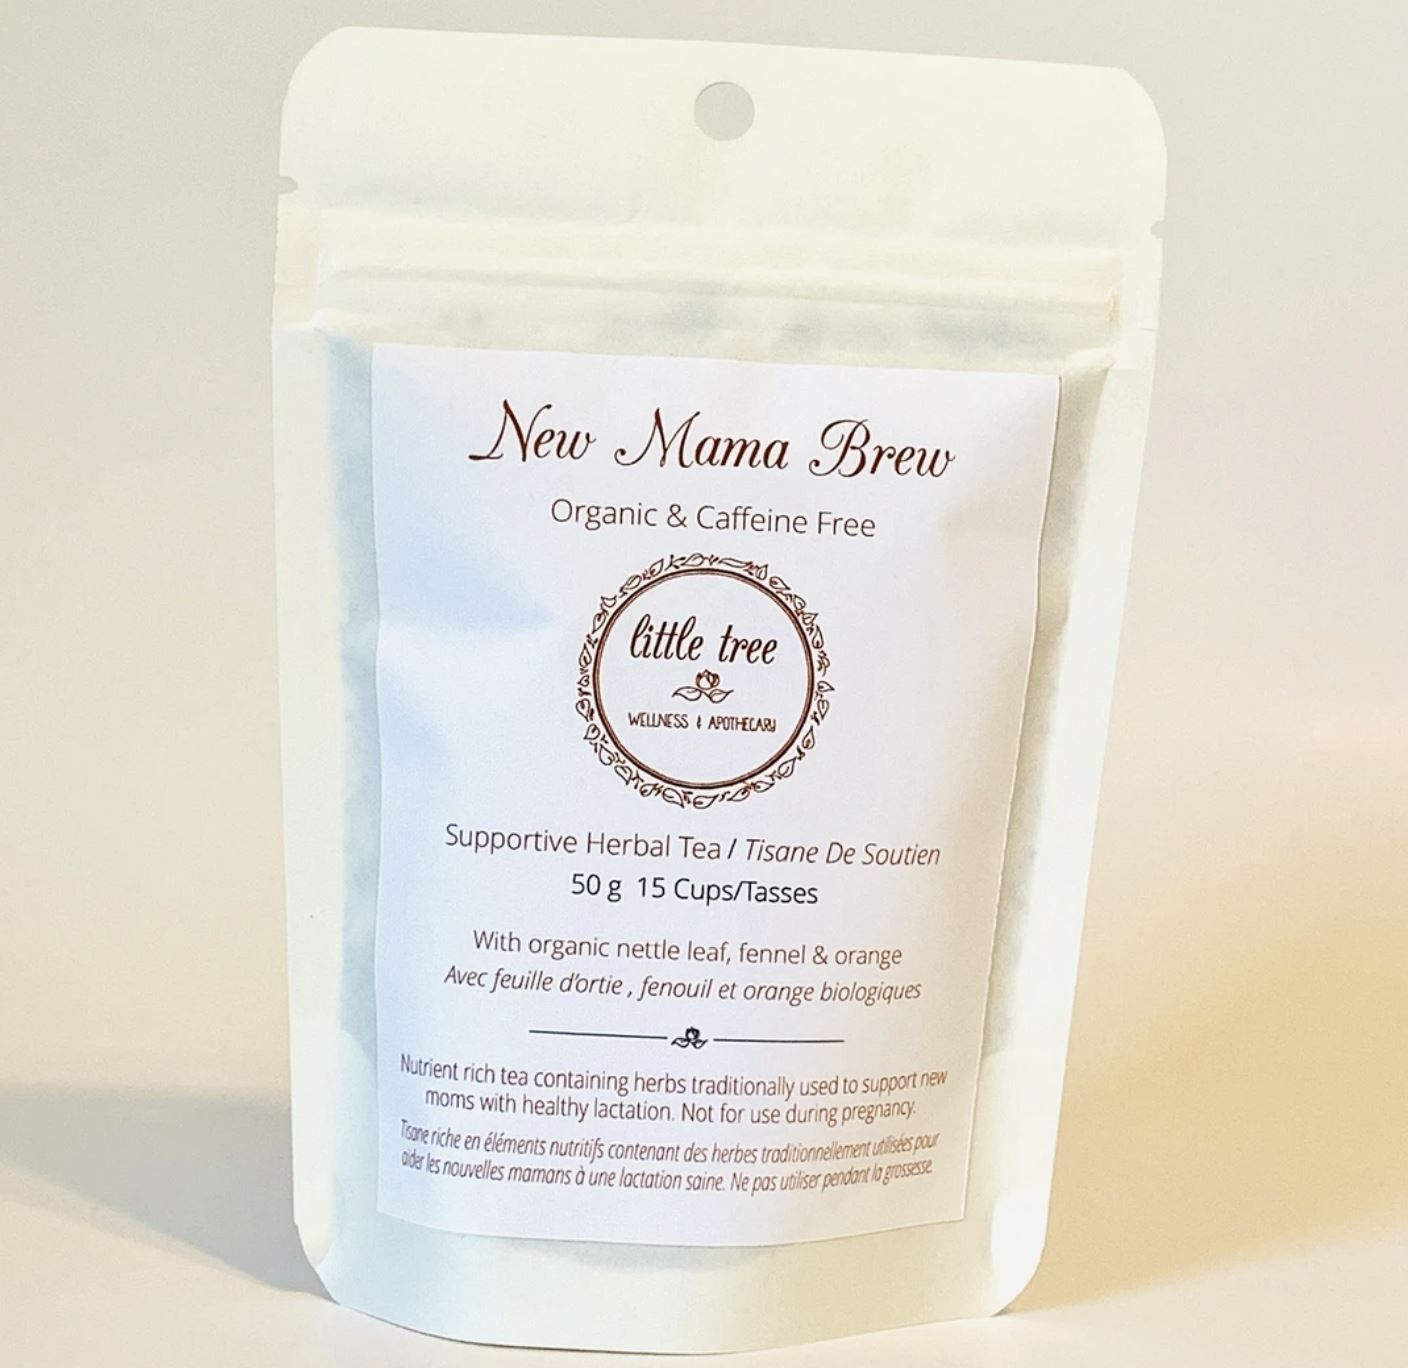 28+ New Mama Brew Herbal Tea by Little Tree Wellness & Apothecary